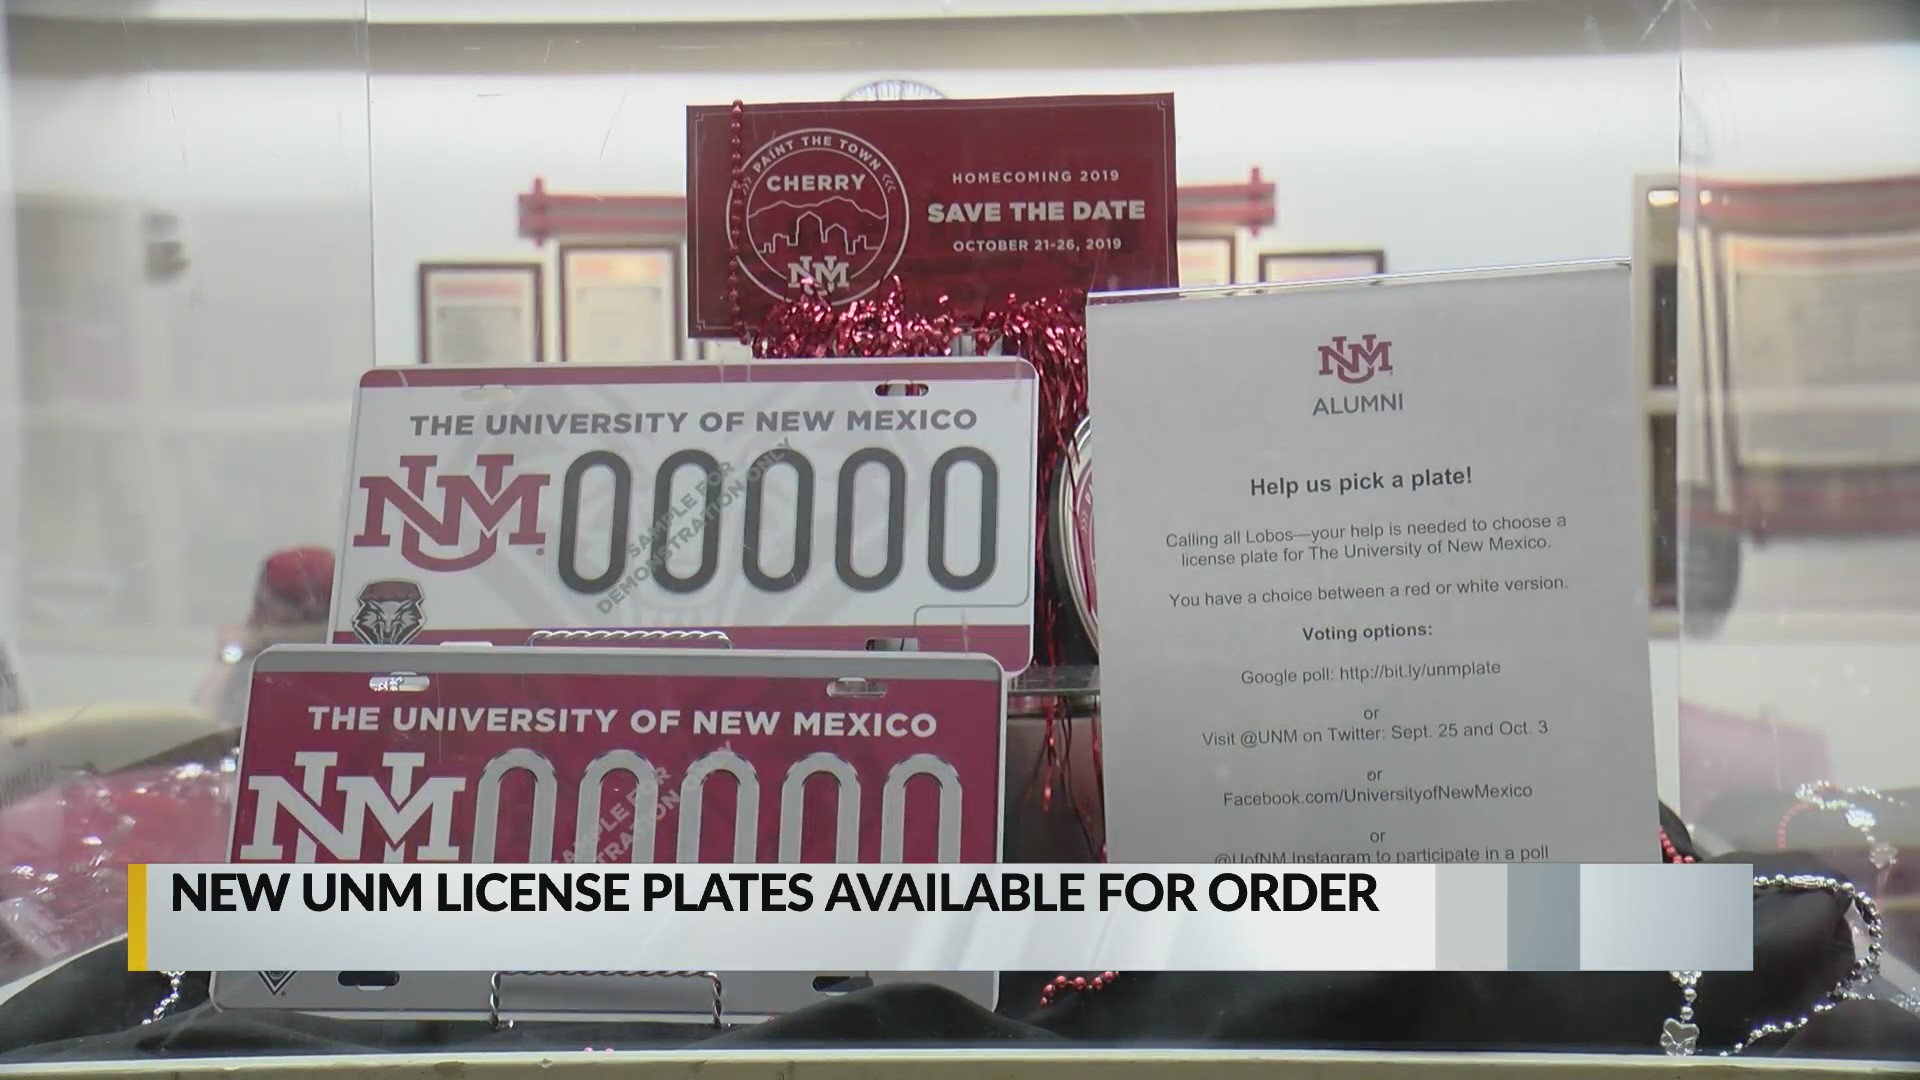 New University of New Mexico license plates available for order